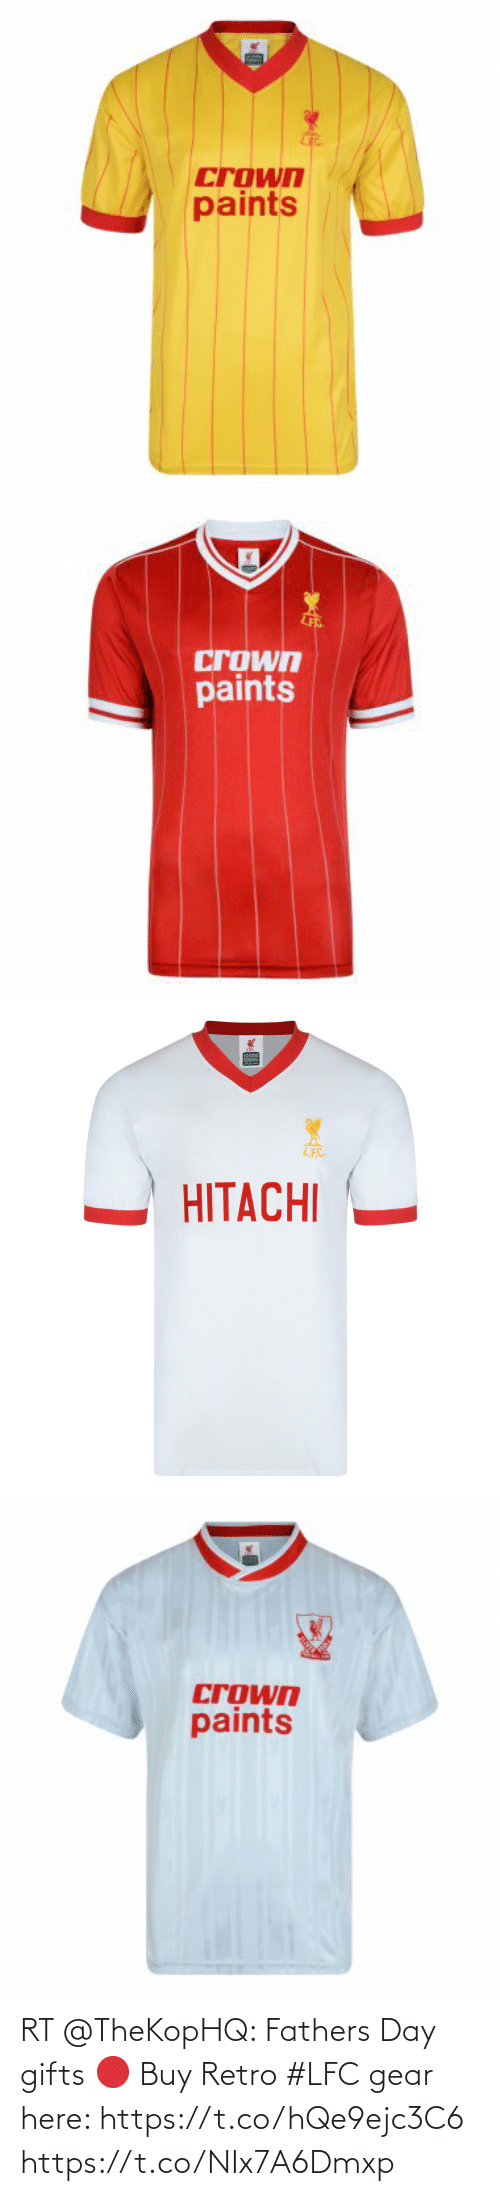 fathers day: RT @TheKopHQ: Fathers Day gifts 🔴  Buy Retro #LFC gear here: https://t.co/hQe9ejc3C6 https://t.co/NIx7A6Dmxp